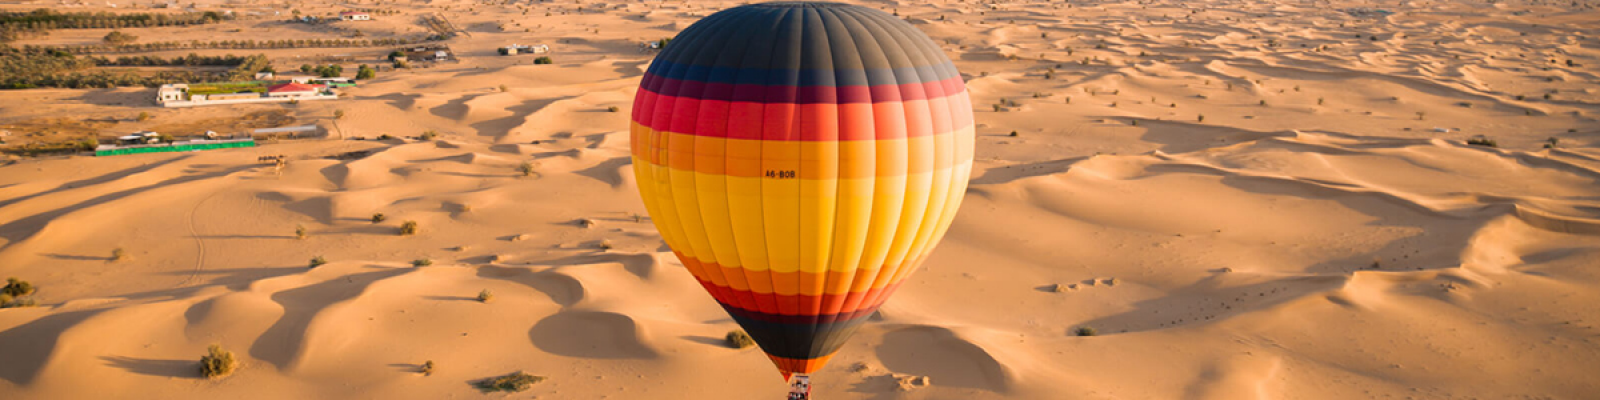 dubai hot air balloon tour, hot air balloon dubai tripadvisor, hot air ballon tour dubai